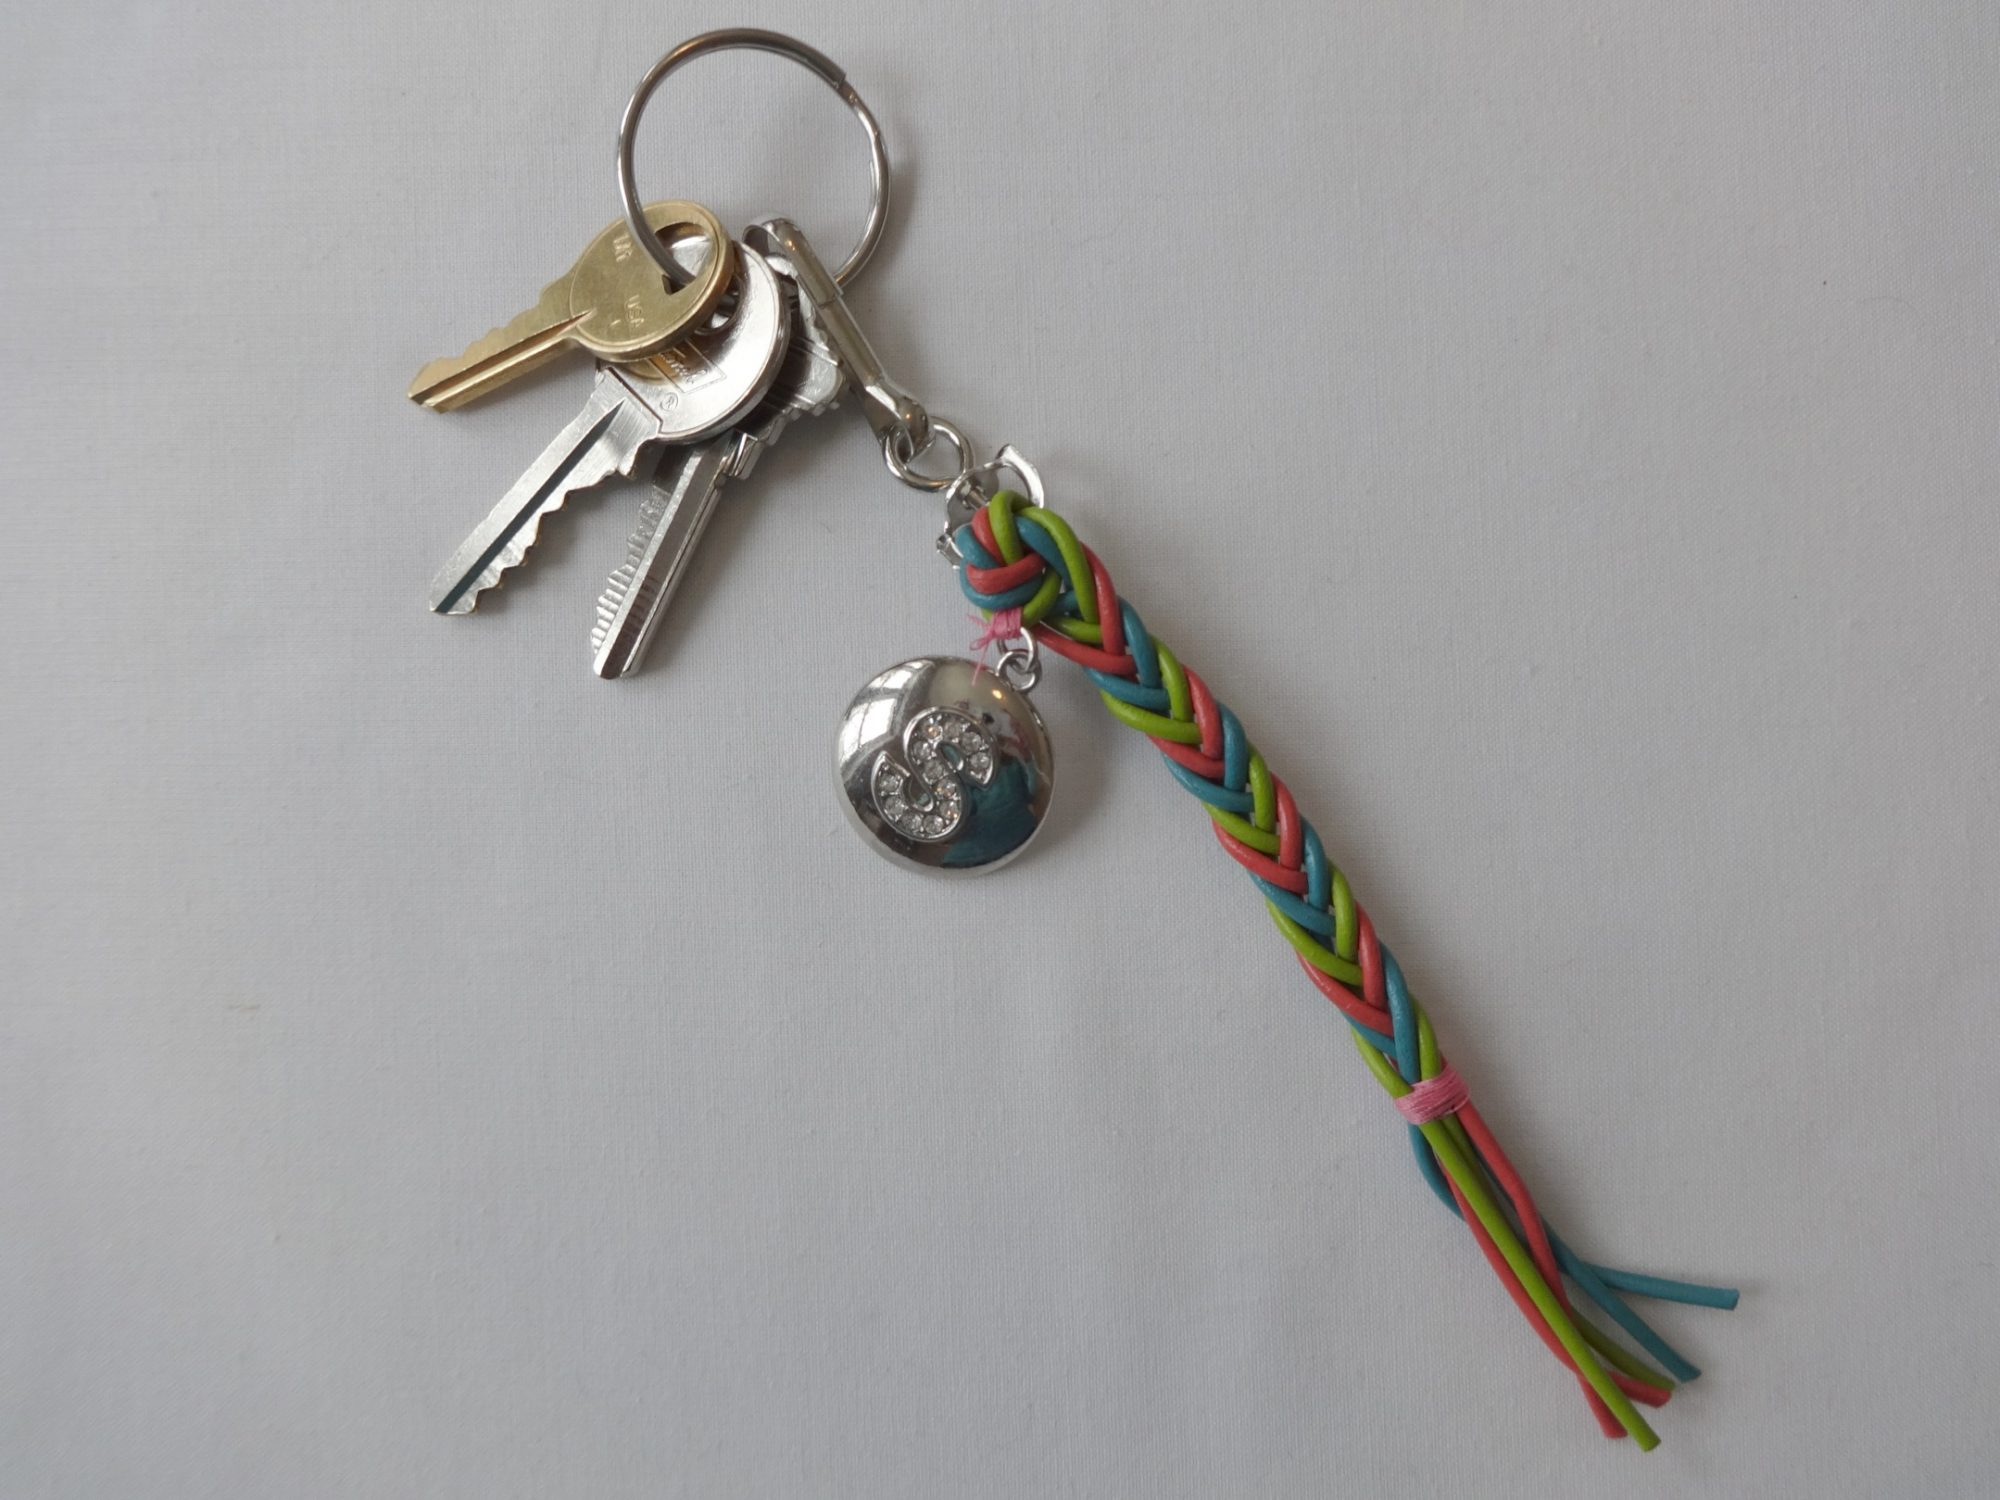 Keychain Image 7:Featured Image